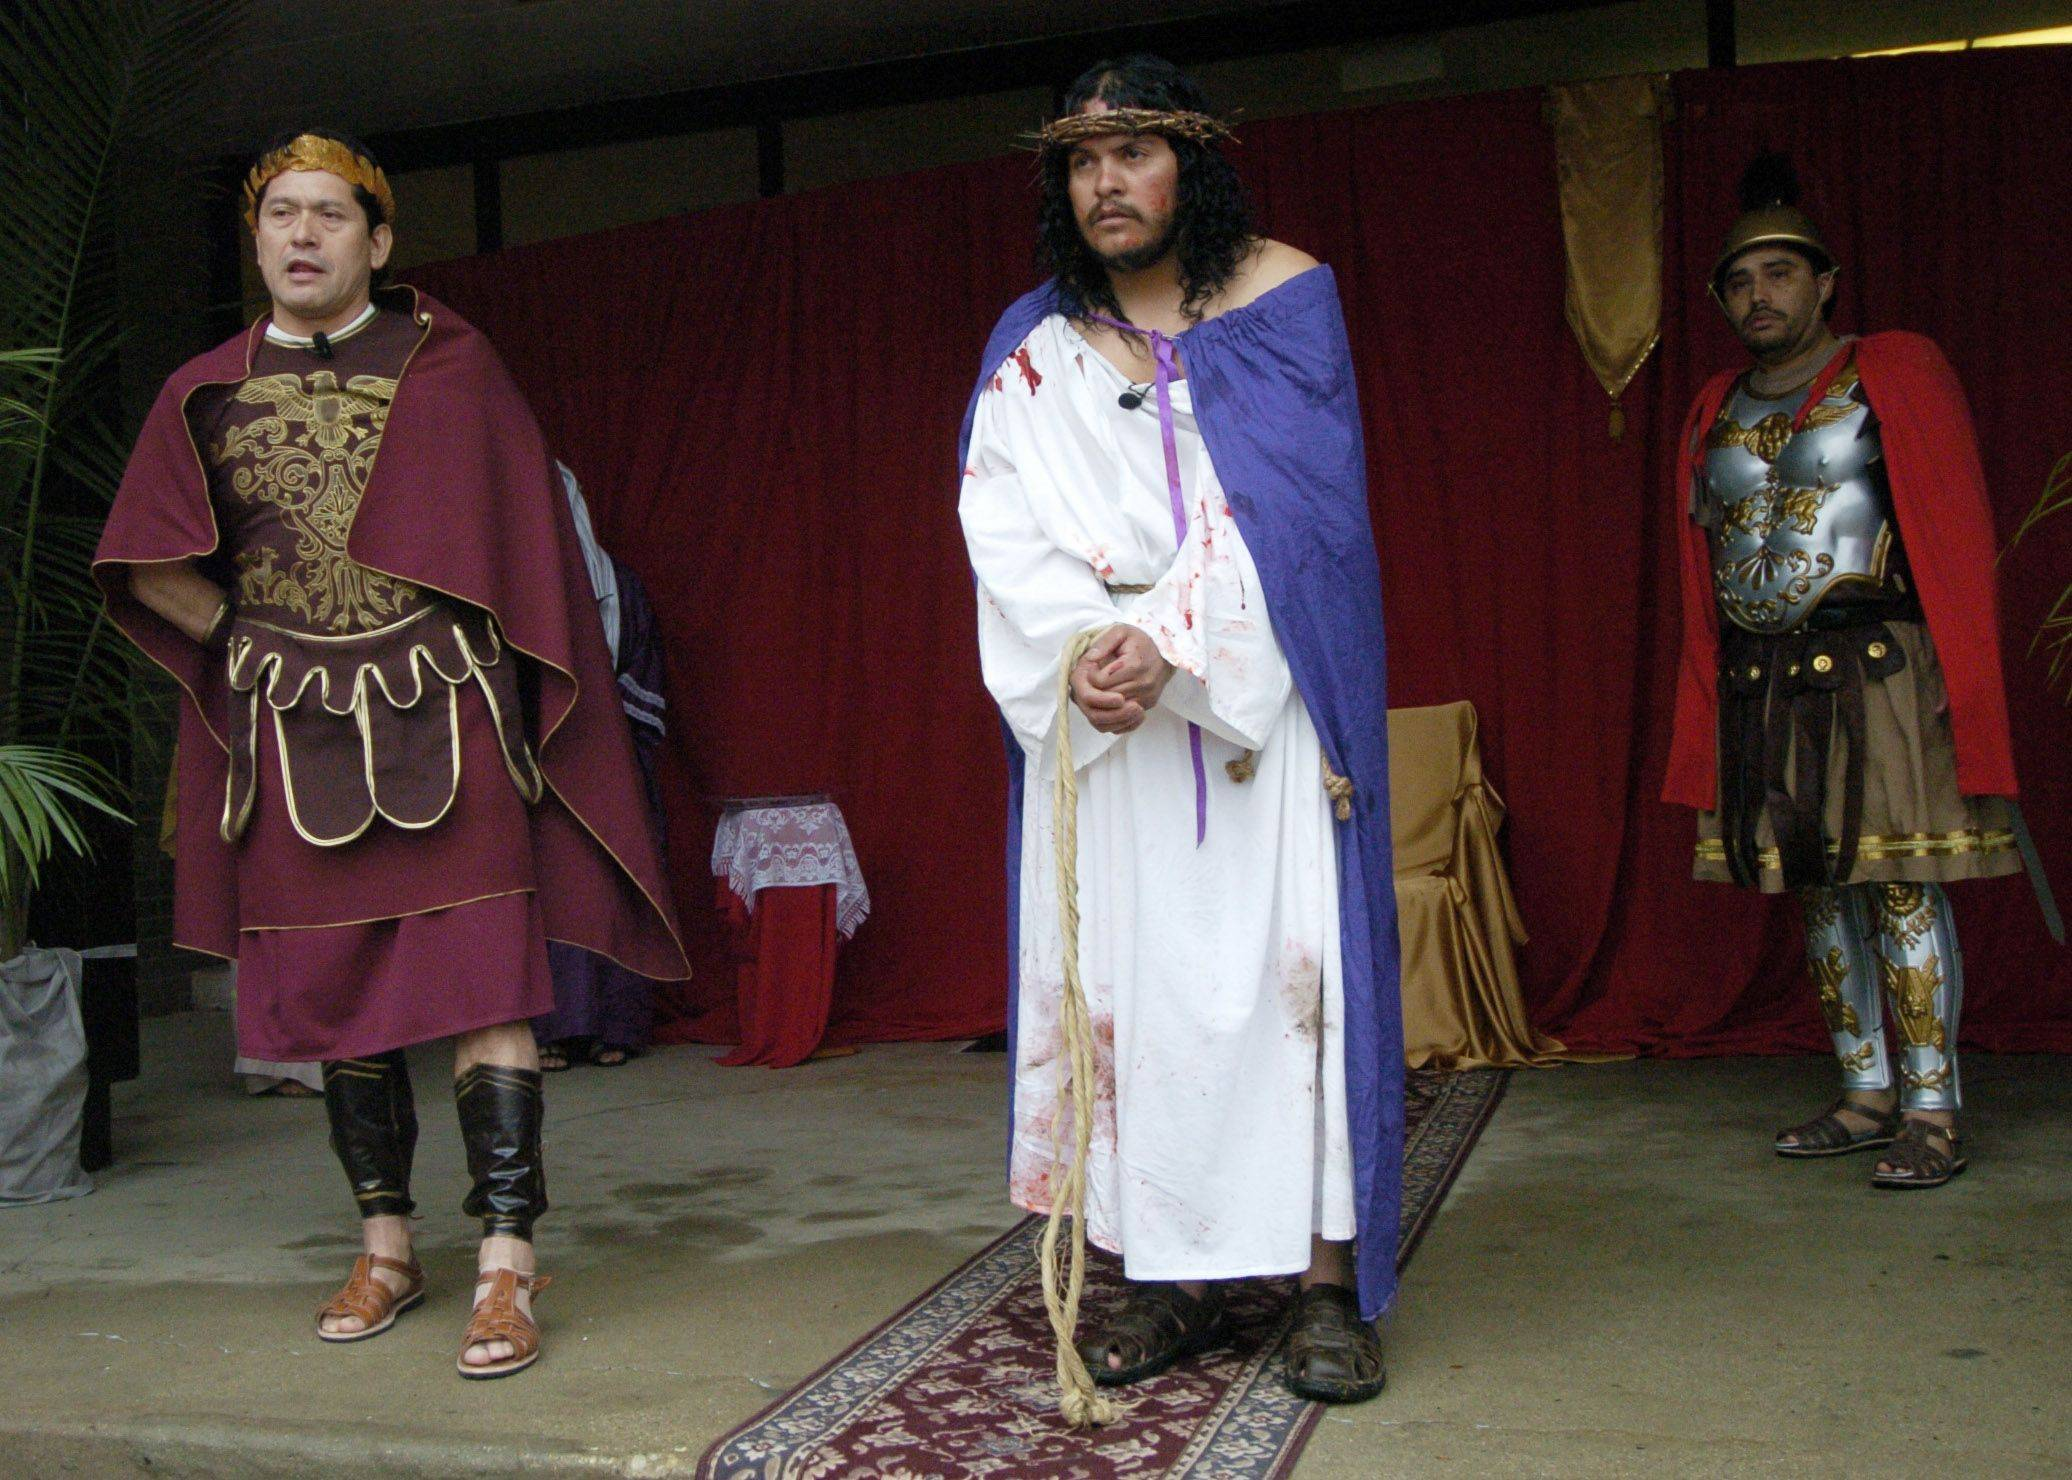 Pontius Pilate, played by Ciro Torres, condemns Jesus, played by Omar Parma, during the Good Friday procession from St. Thomas Church to Mission San Juan Diego in Arlington Heights.